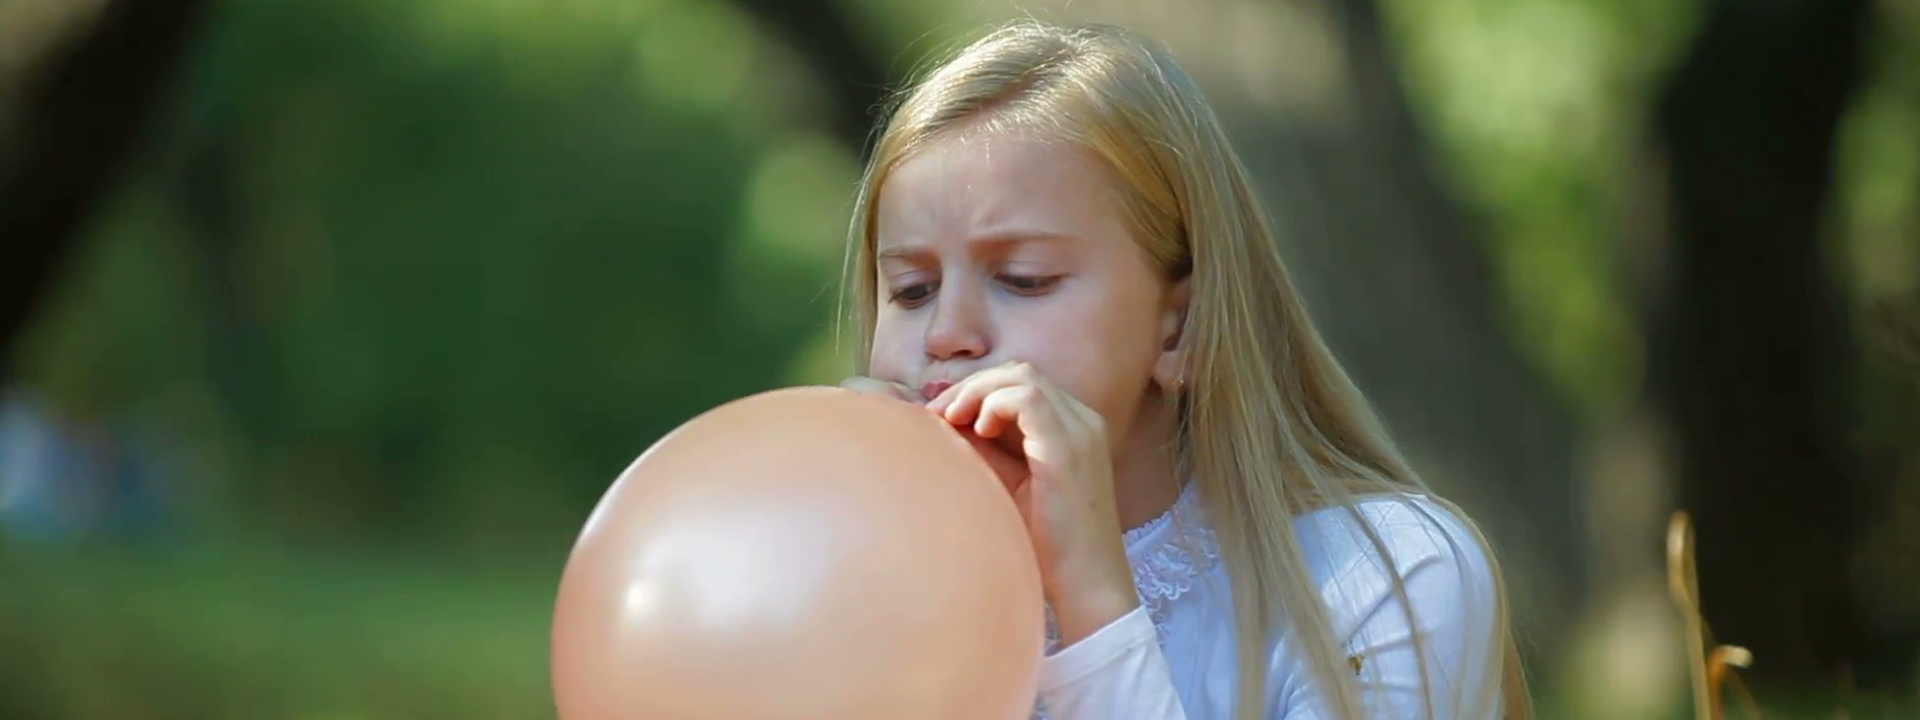 face-of-funny-little-girl-blowing-up-a-balloon-outdoors_vuejbcorol__F0000_.